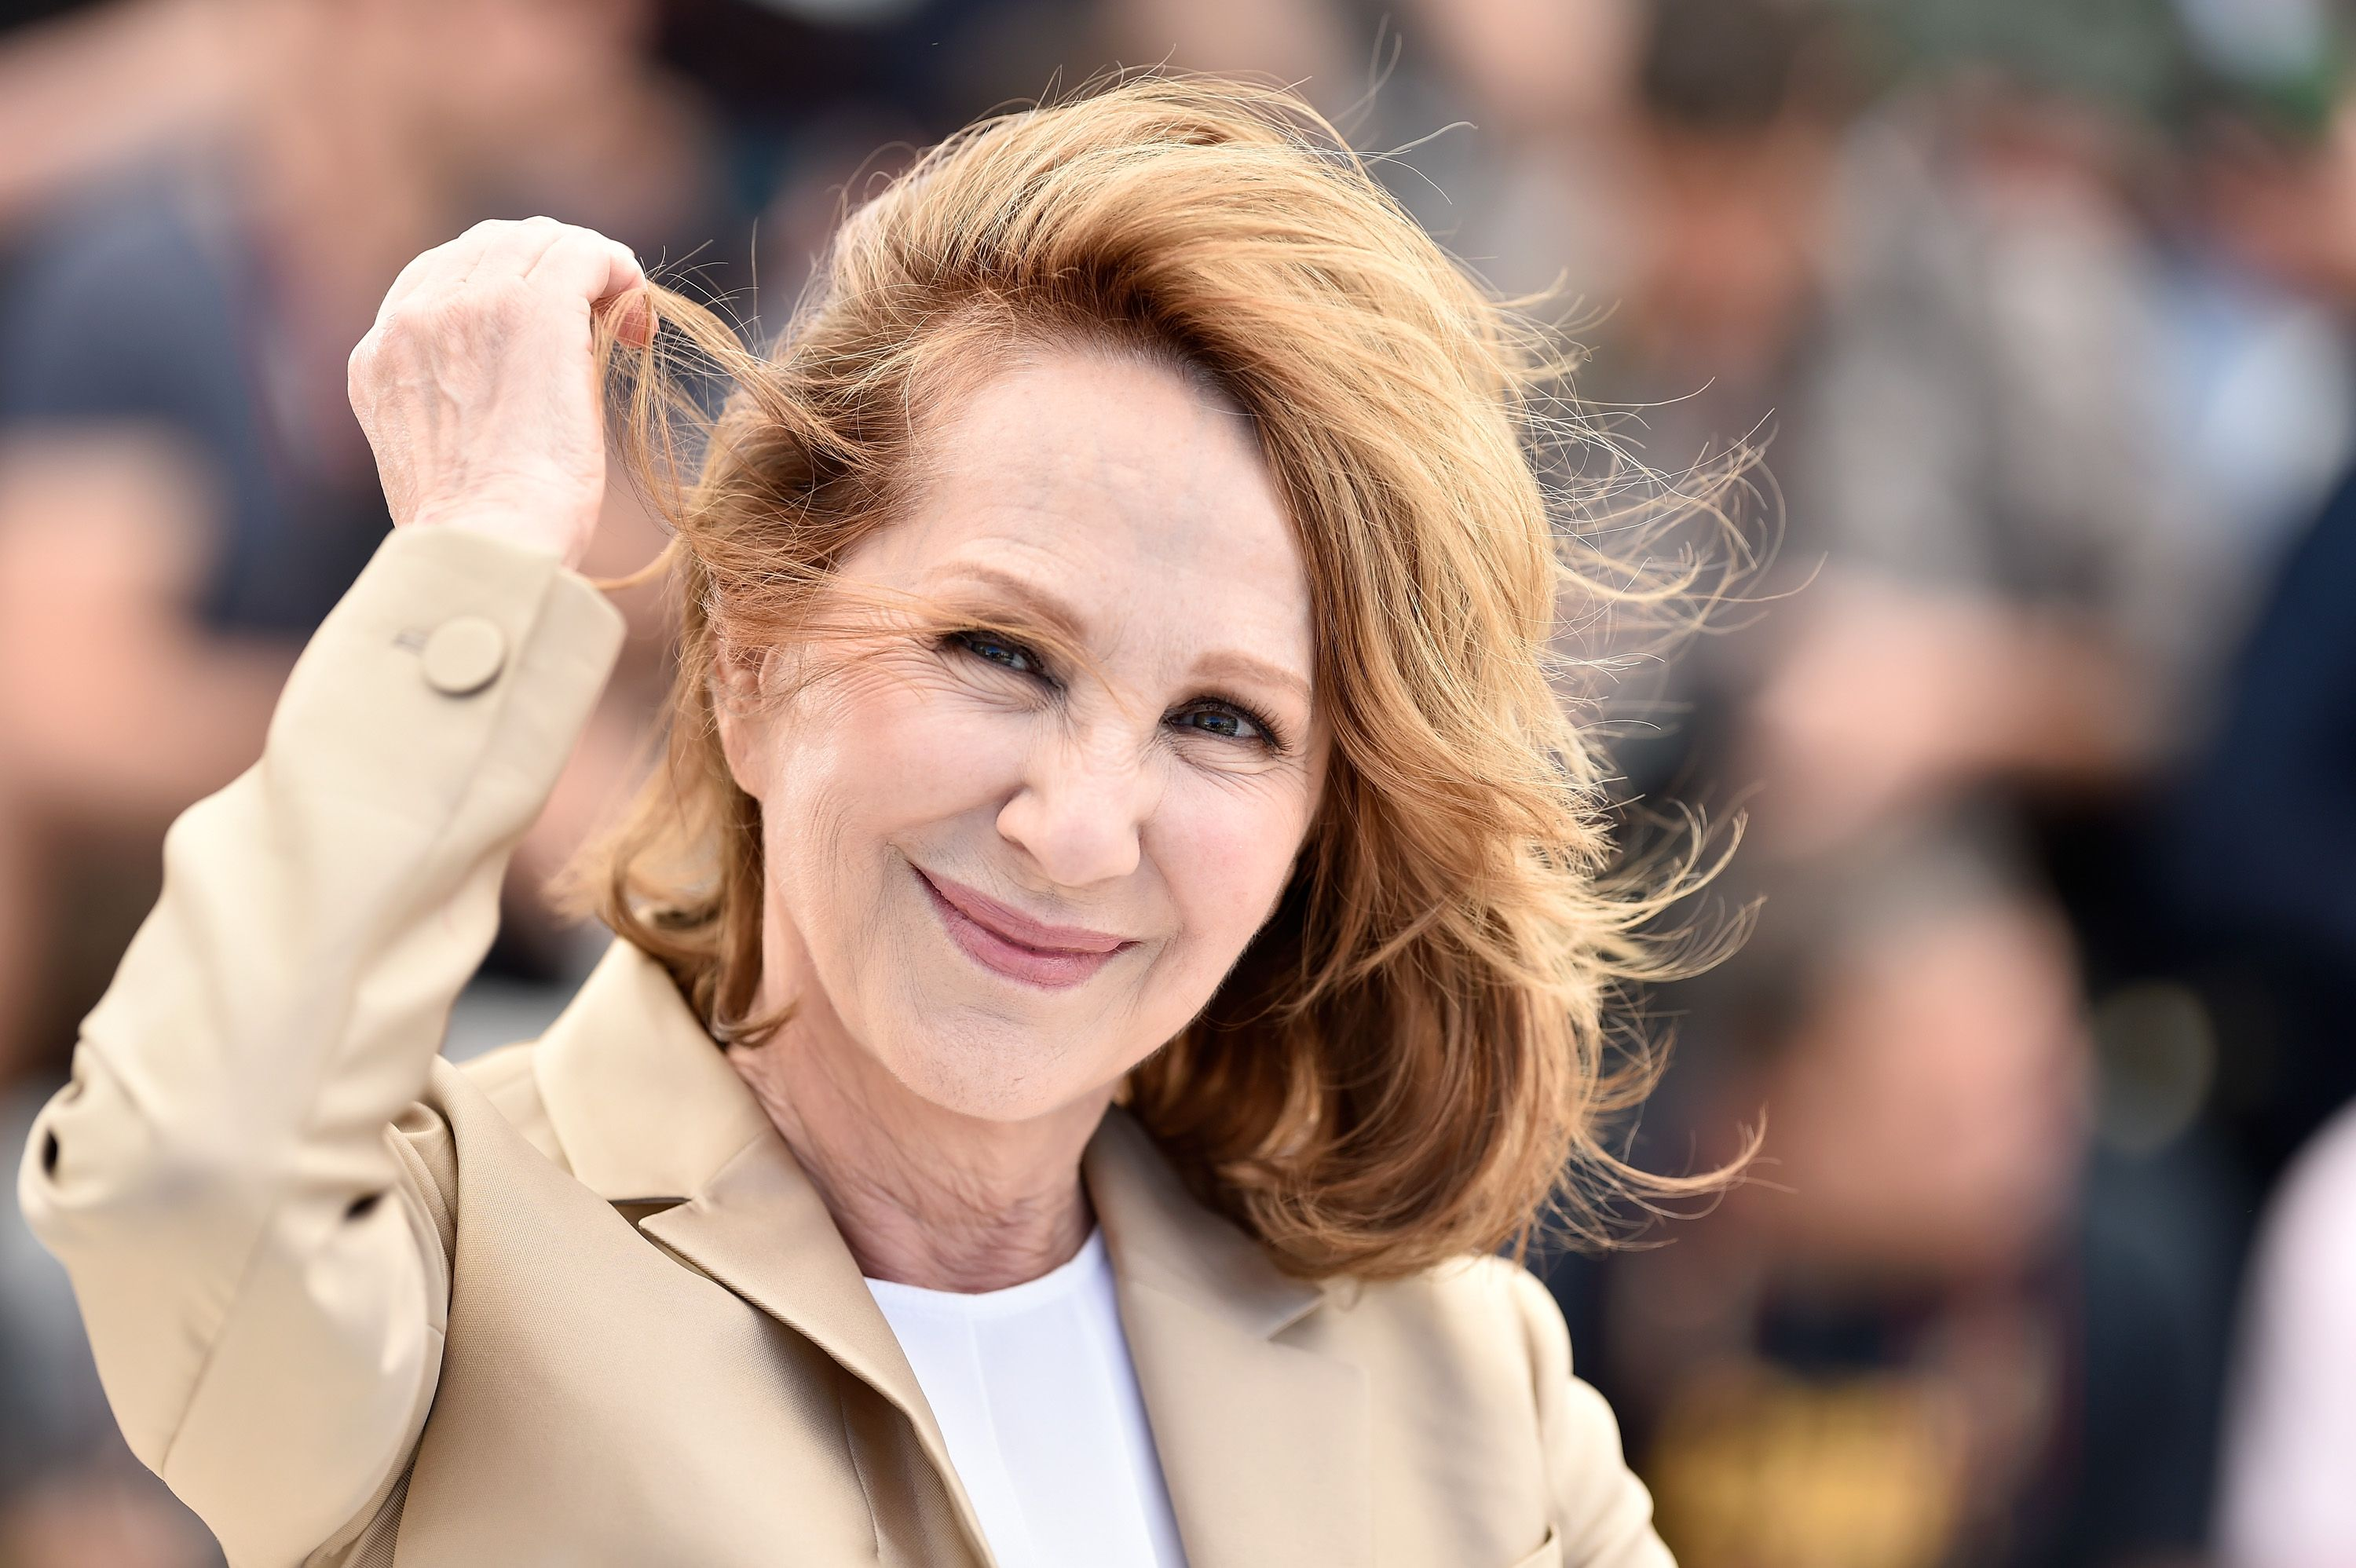 Nathalie Baye au Palais des Festivals le 19 mai 2016 à Cannes, France. | Photo : Getty Images